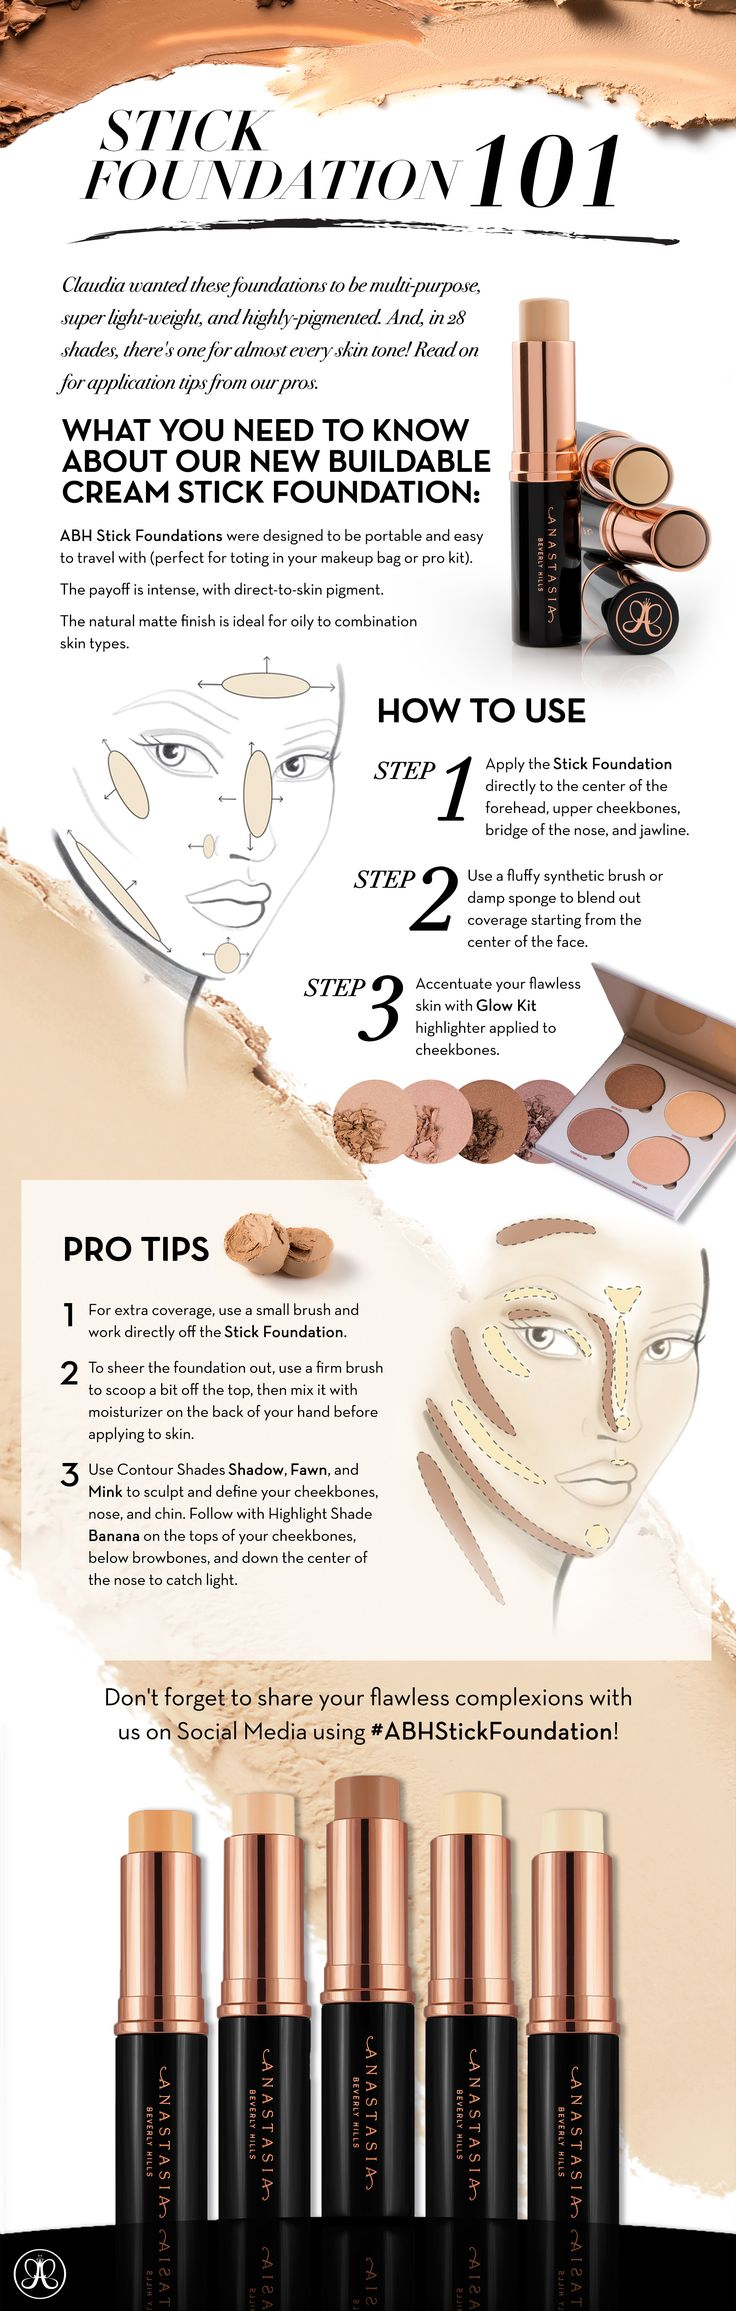 Beyond the Brow | Official Blog of Anastasia Beverly Hills - Stick Foundation…